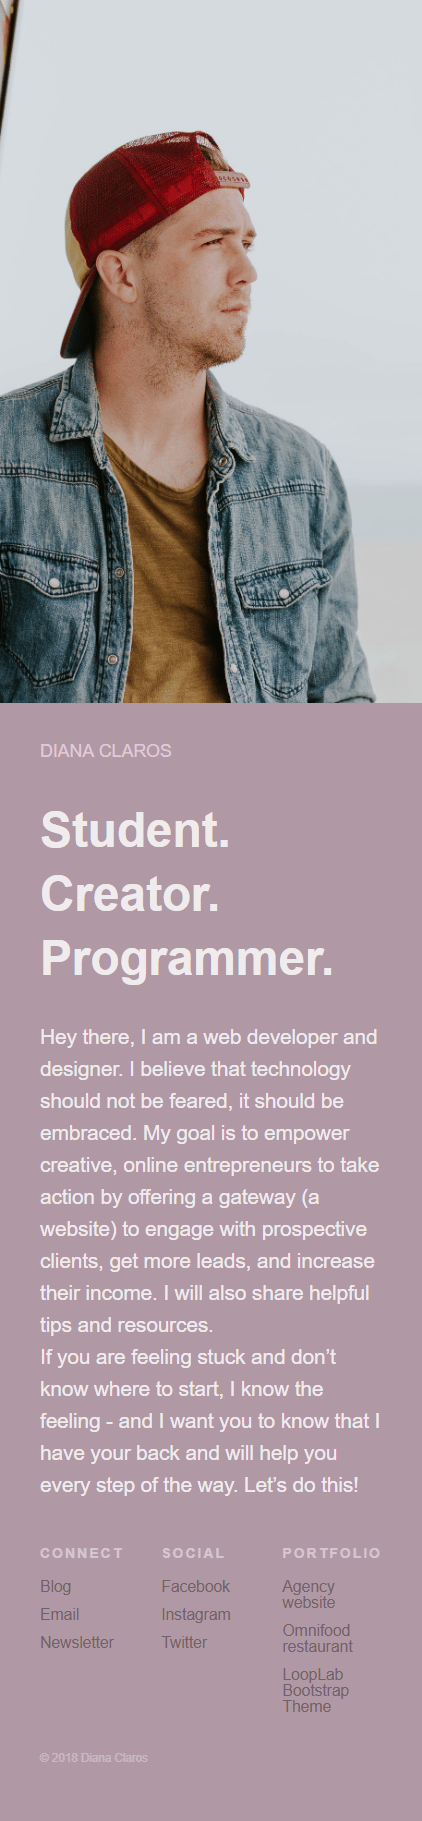 My Portfolio Website w/ Bootstrap - image 1 - student project